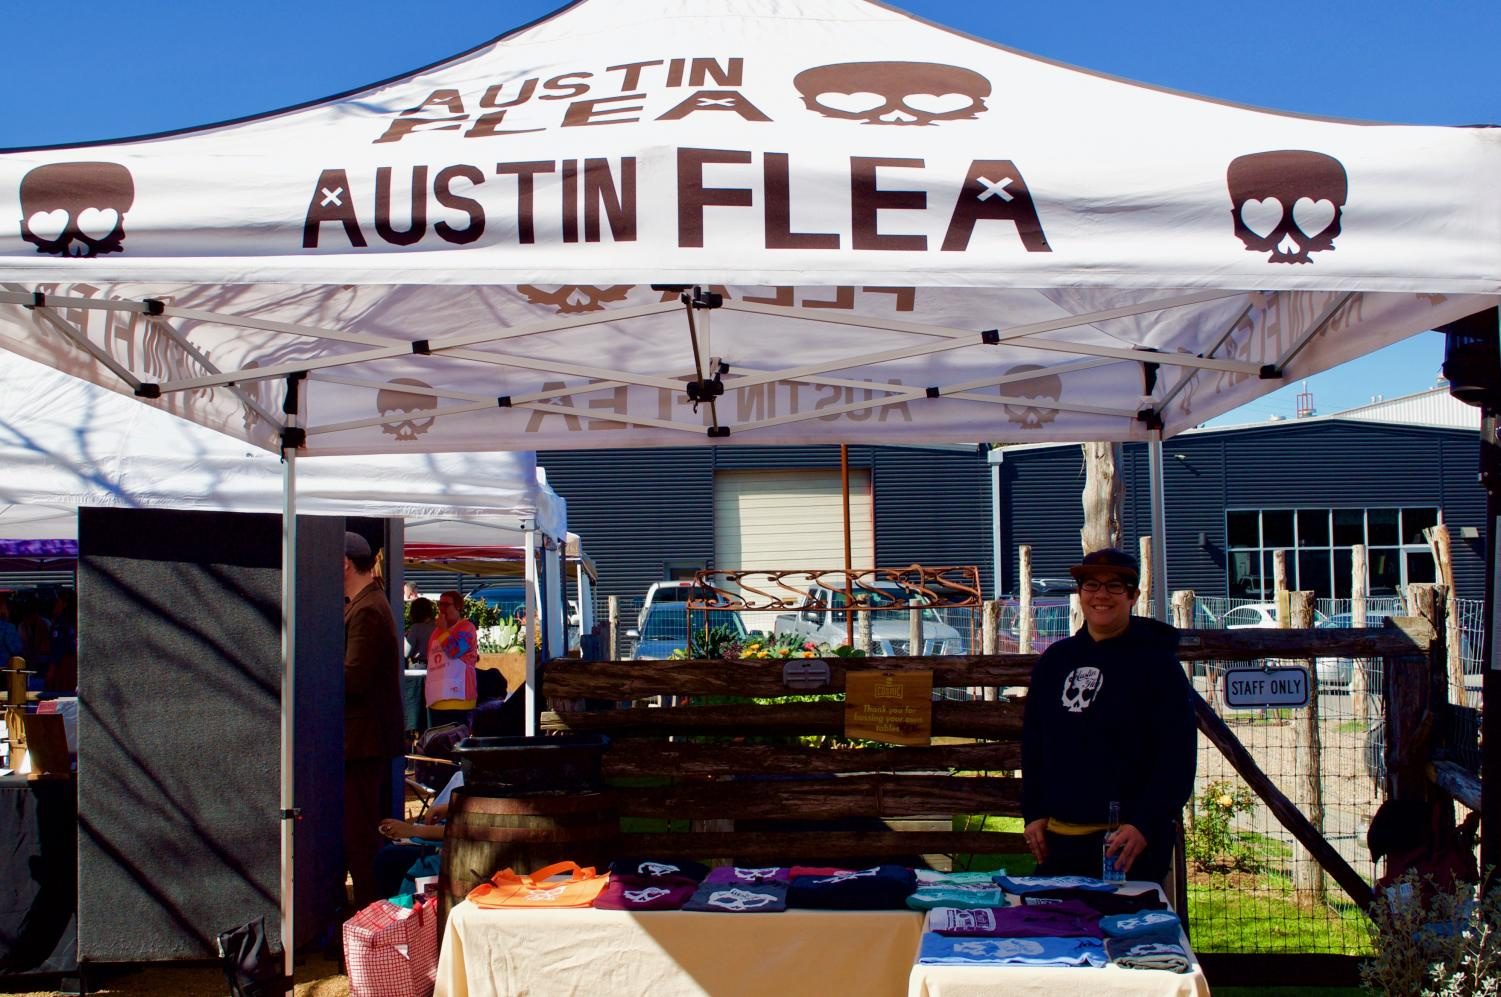 """Garcia, an Austin Flea employee, is seen selling T-shirts. """"Everything here is unique. Jewelry tends to have the most people creating and selling, so we try to balance it out by also including organic soaps, clothing, food, original designs, and even CBD joints. We really feature a little bit of everything,"""" Garcia said."""